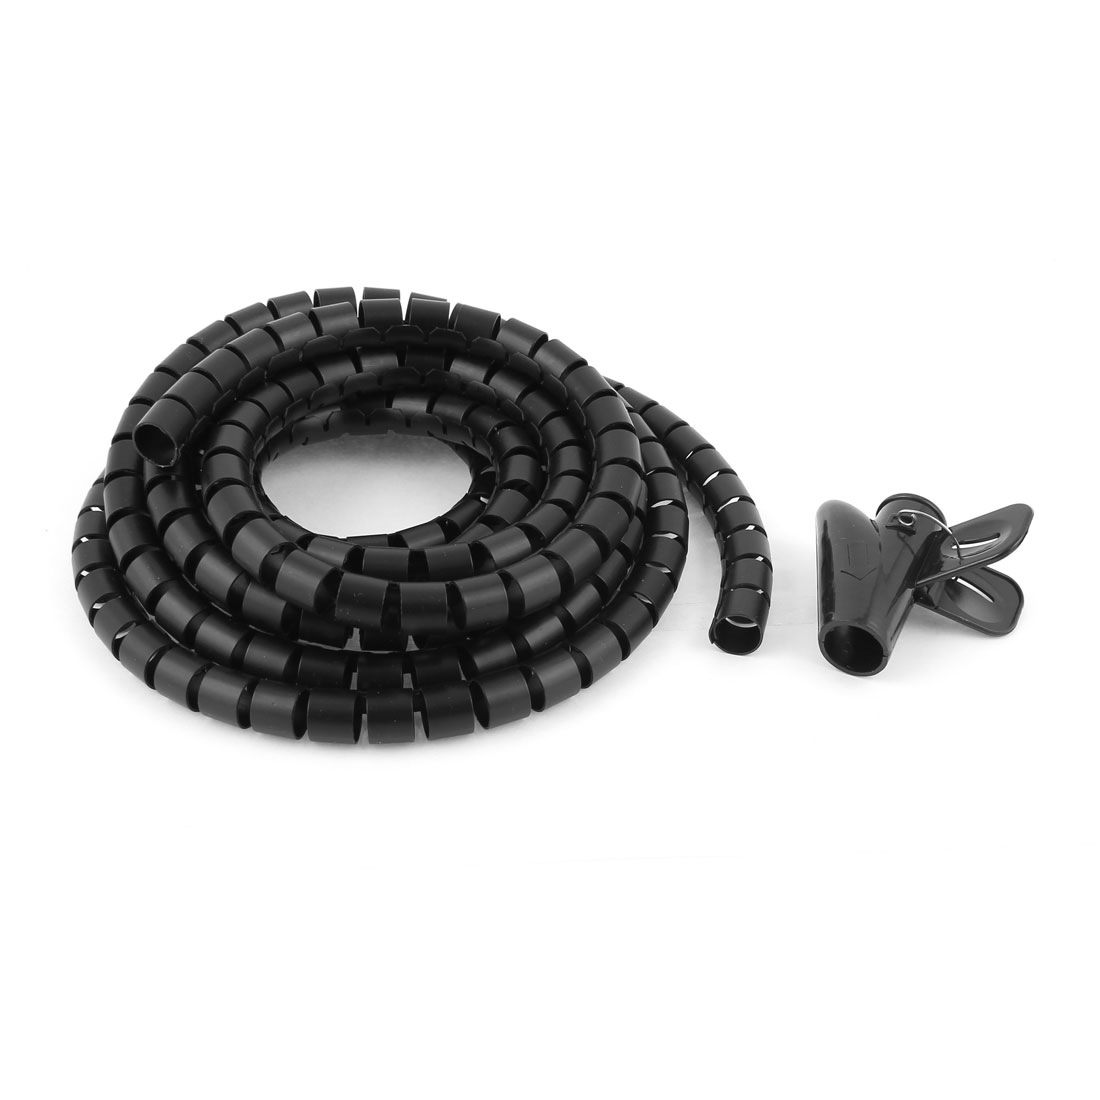 Uxcell Id 15Mm Black Spiral Bands Cable Organizer Wrap W Wire Clip .1.5m1m2m3m5m